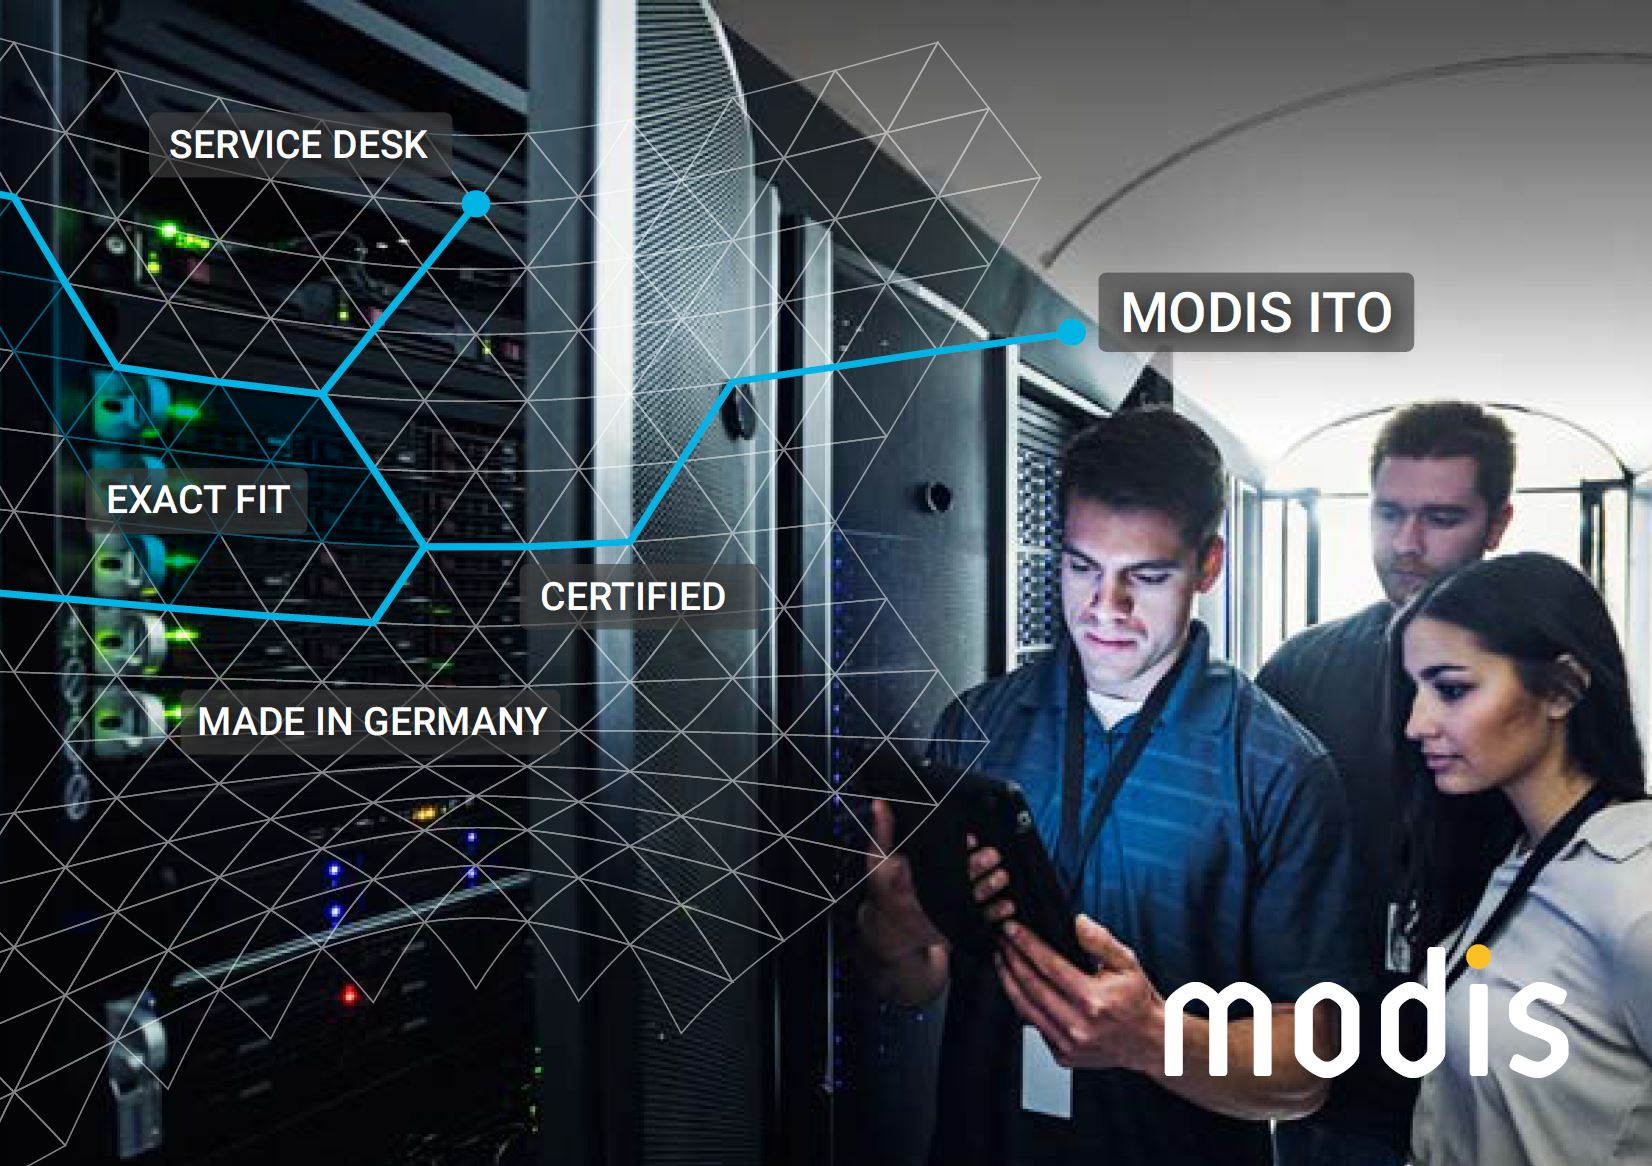 Image Folder Modis ITO IT Support Service Desk User Help Desk Made in Germany